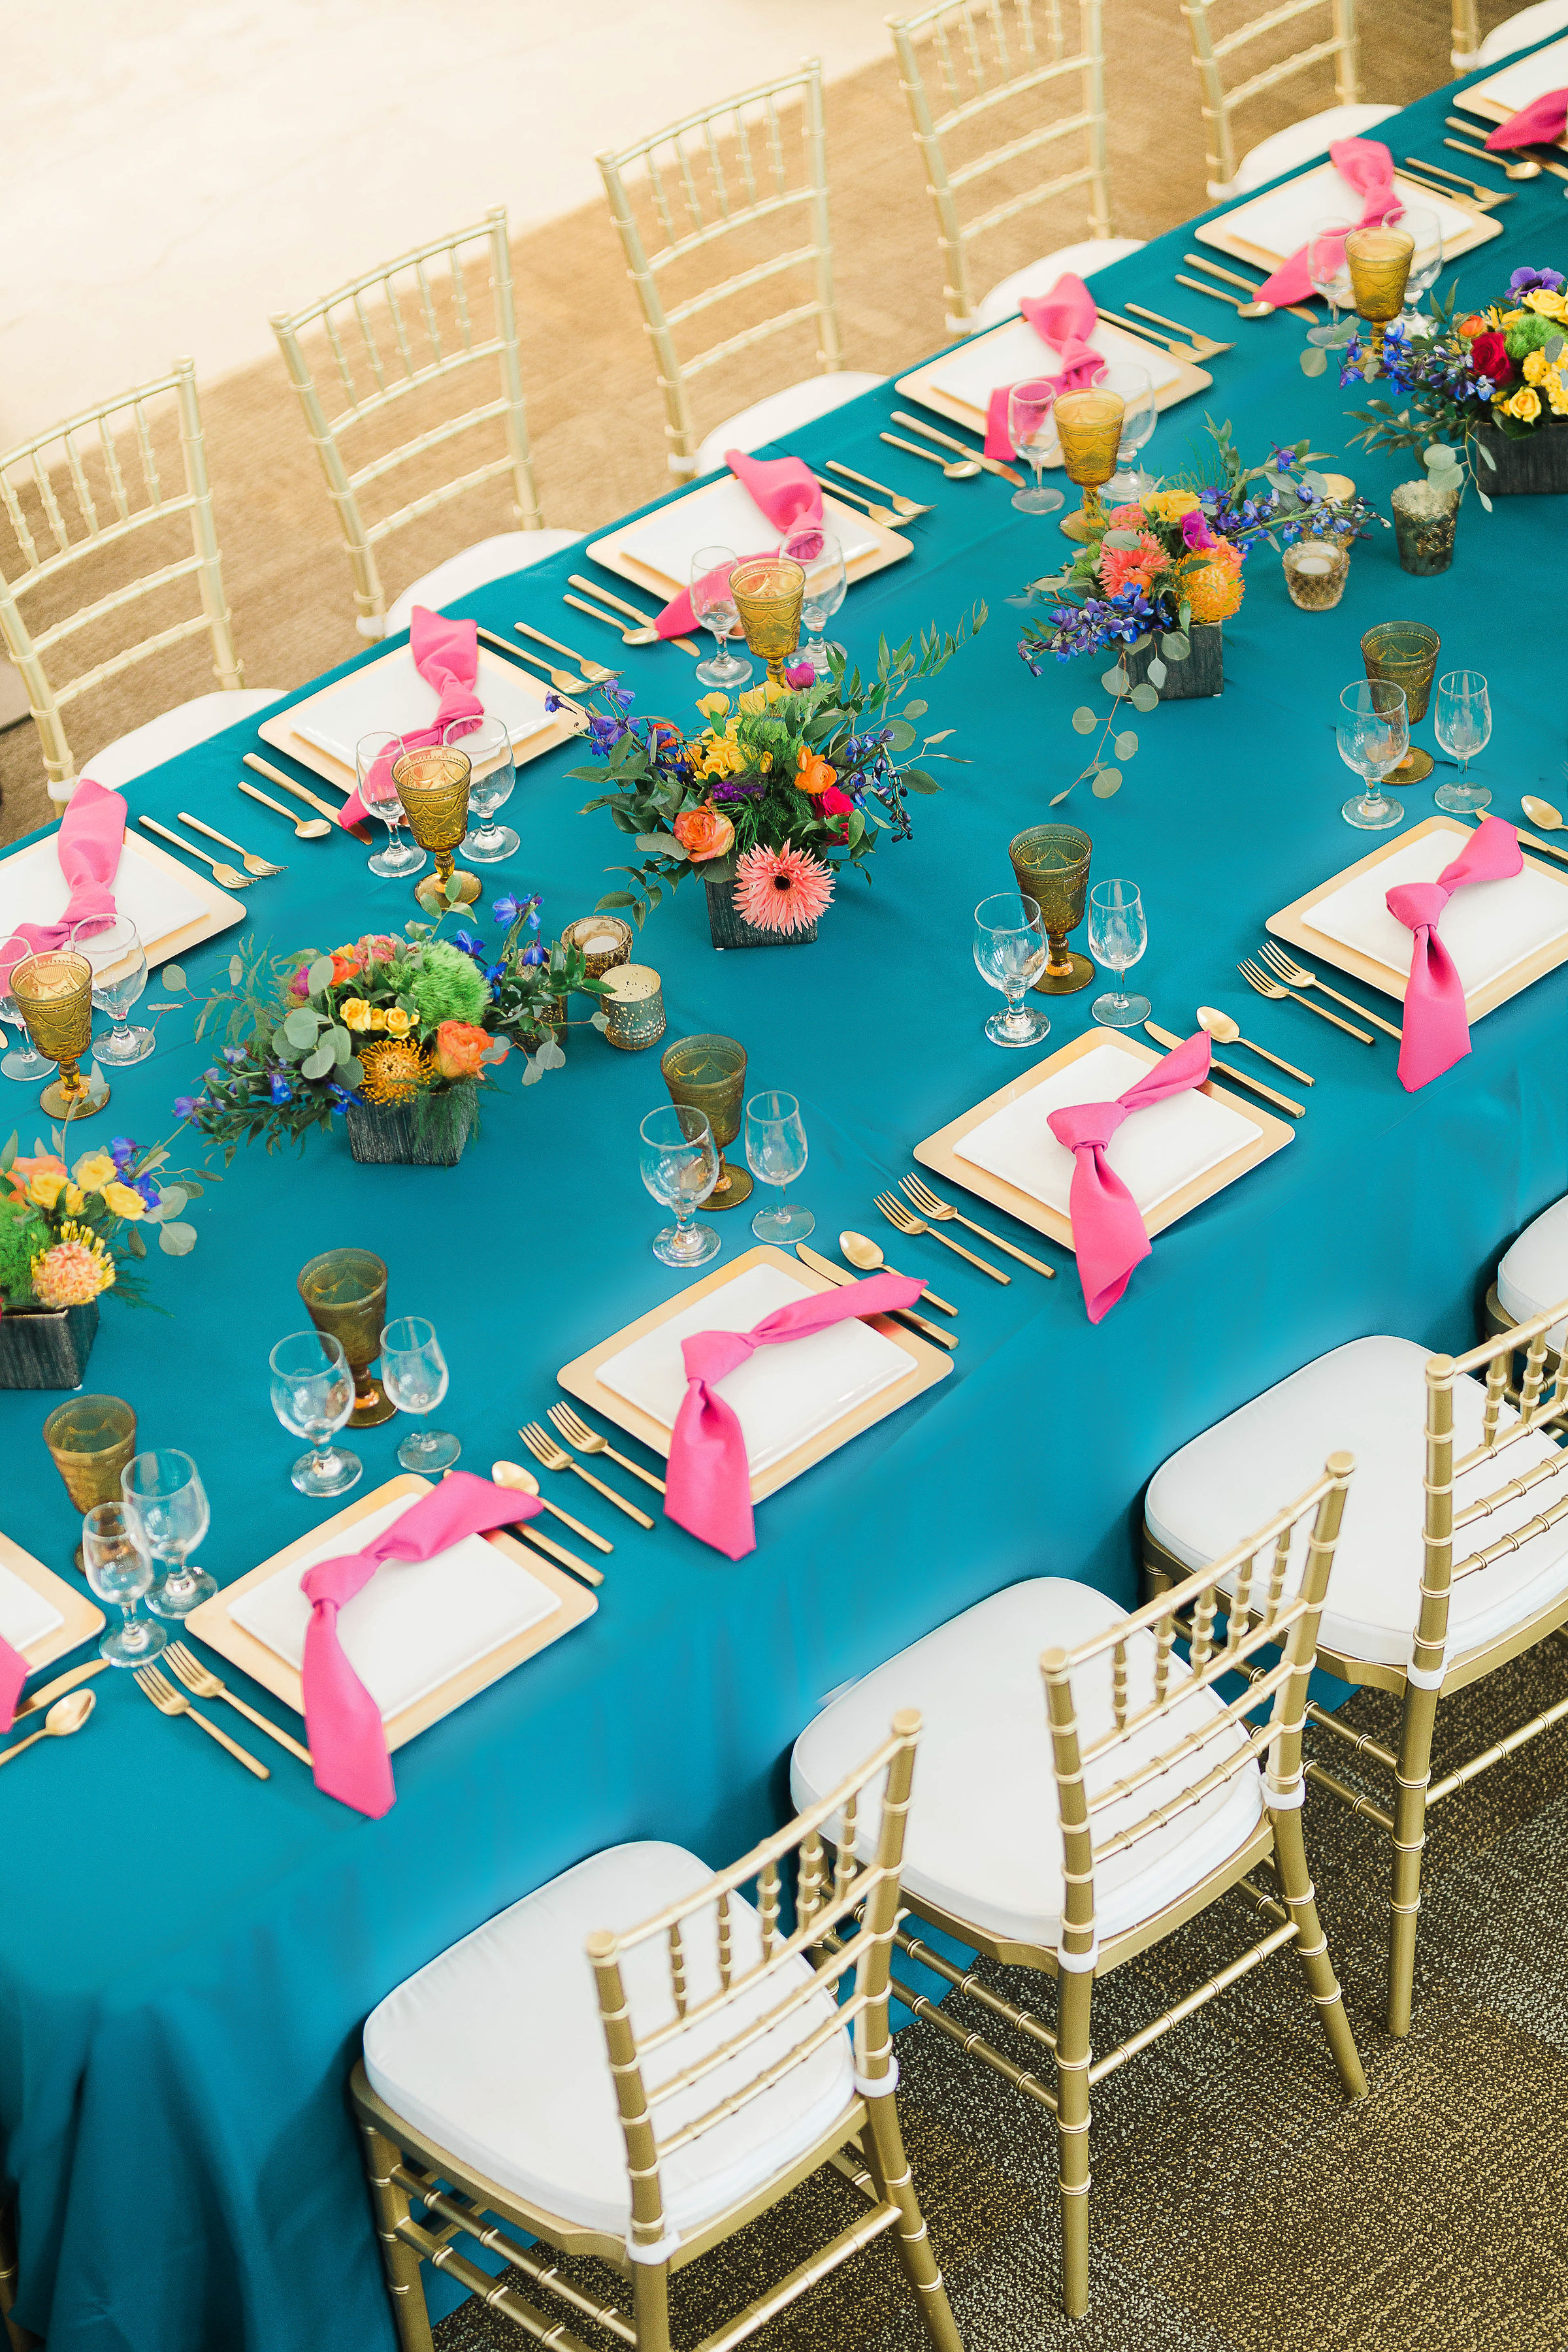 tealweddingdecor